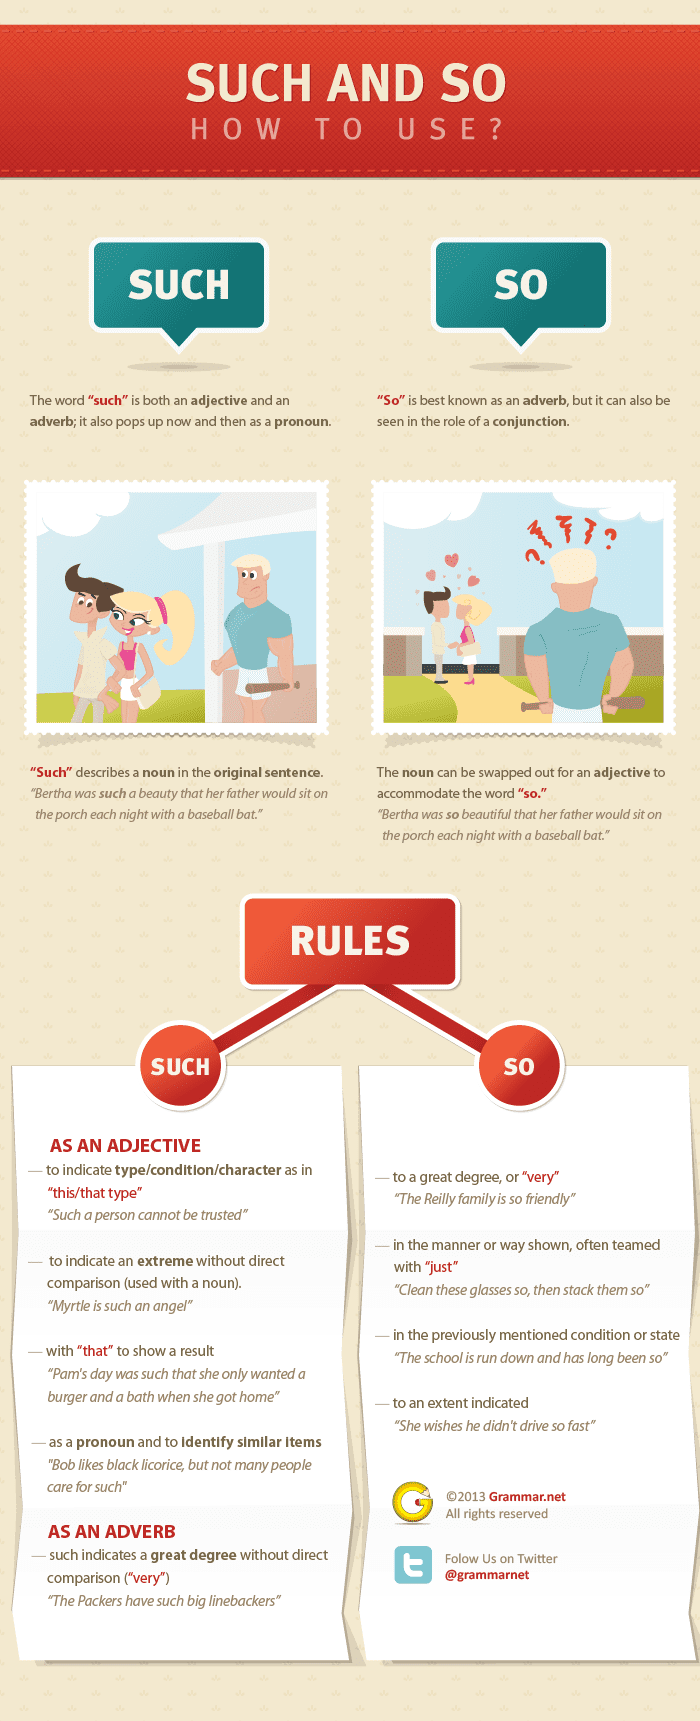 so vs such rules, explanation and examples